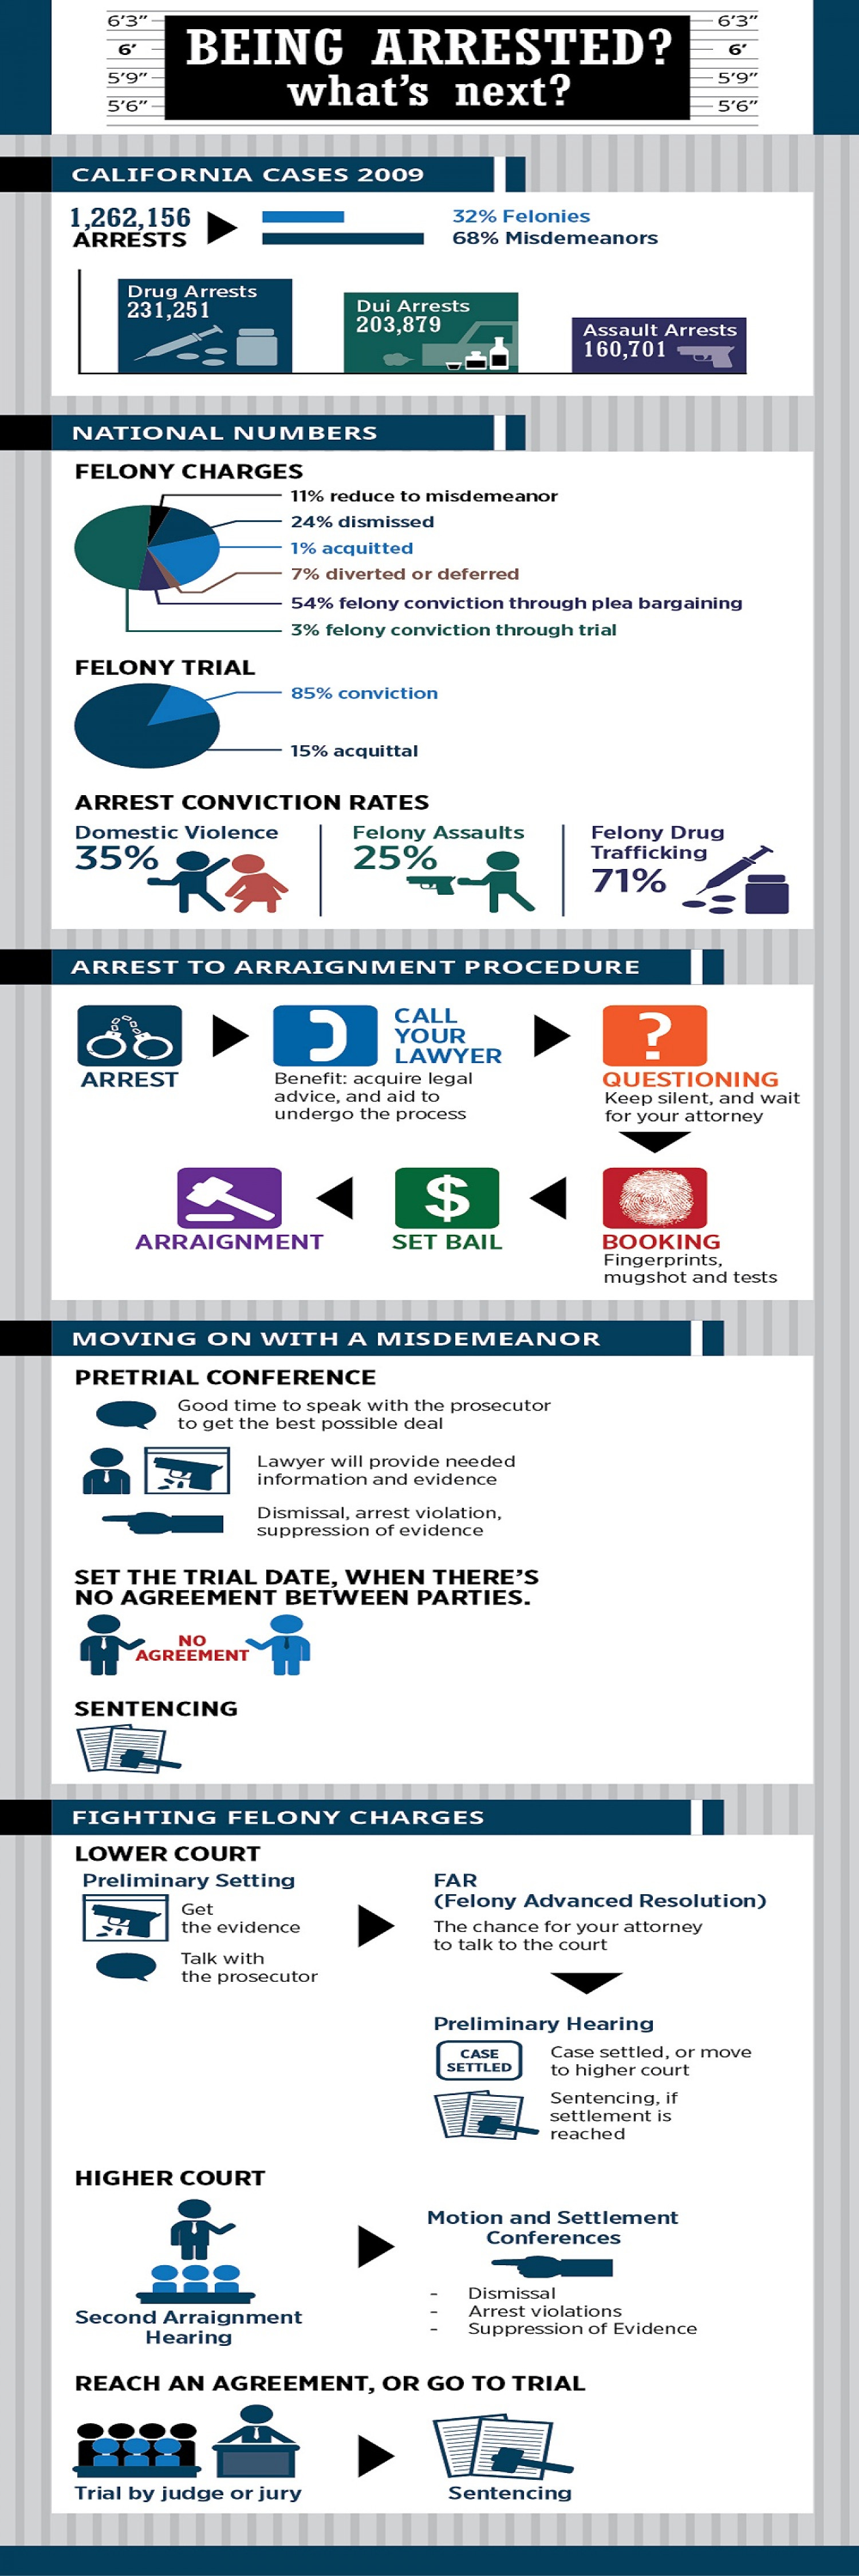 Being Arrested- What's Next? Infographic